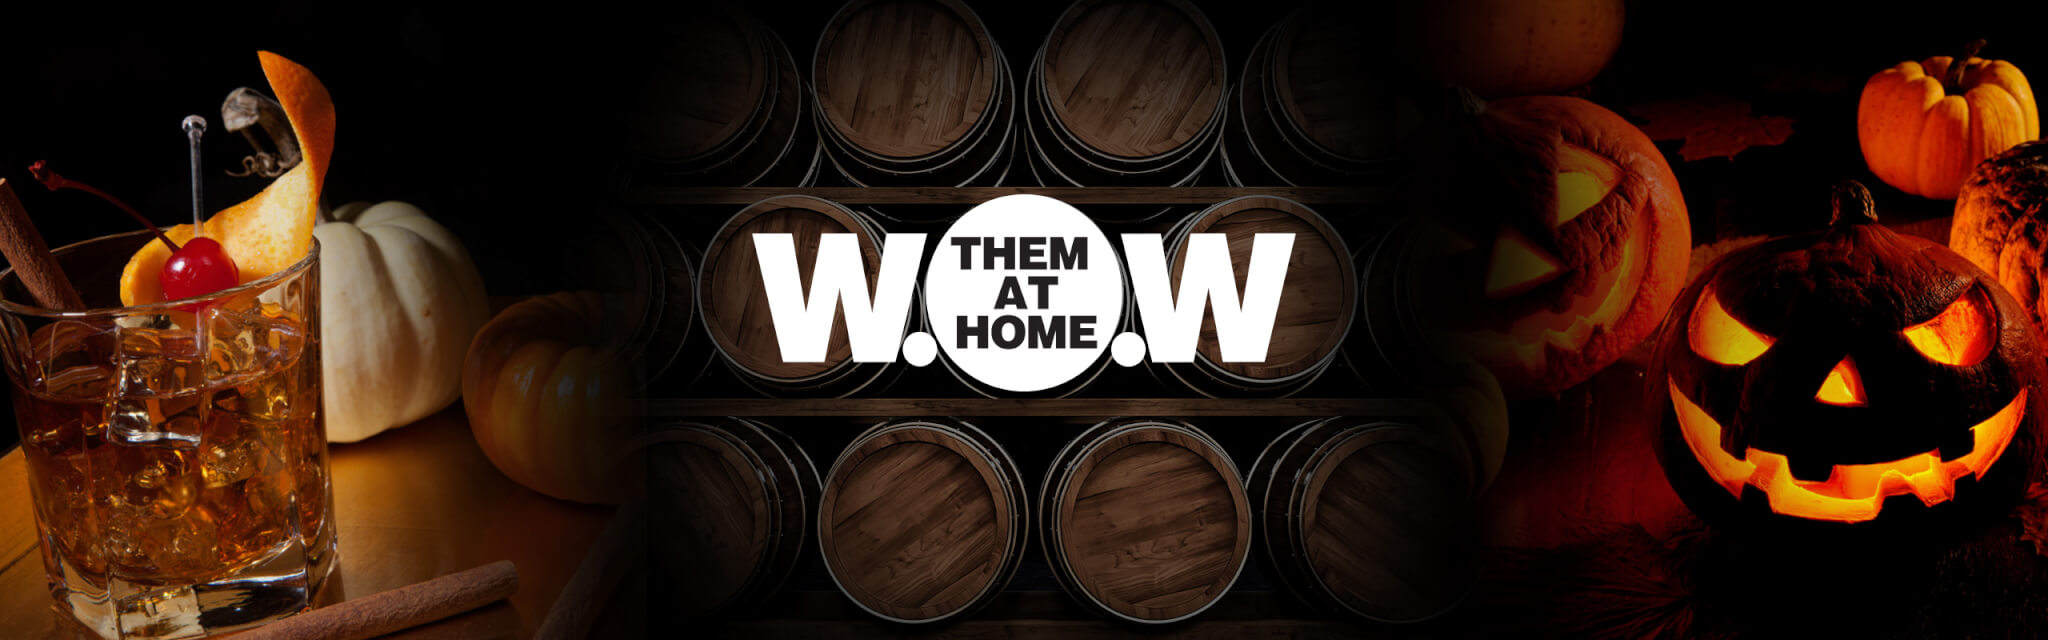 WOW THEM AT HOME - HALLOWEEN EXPERIENCE